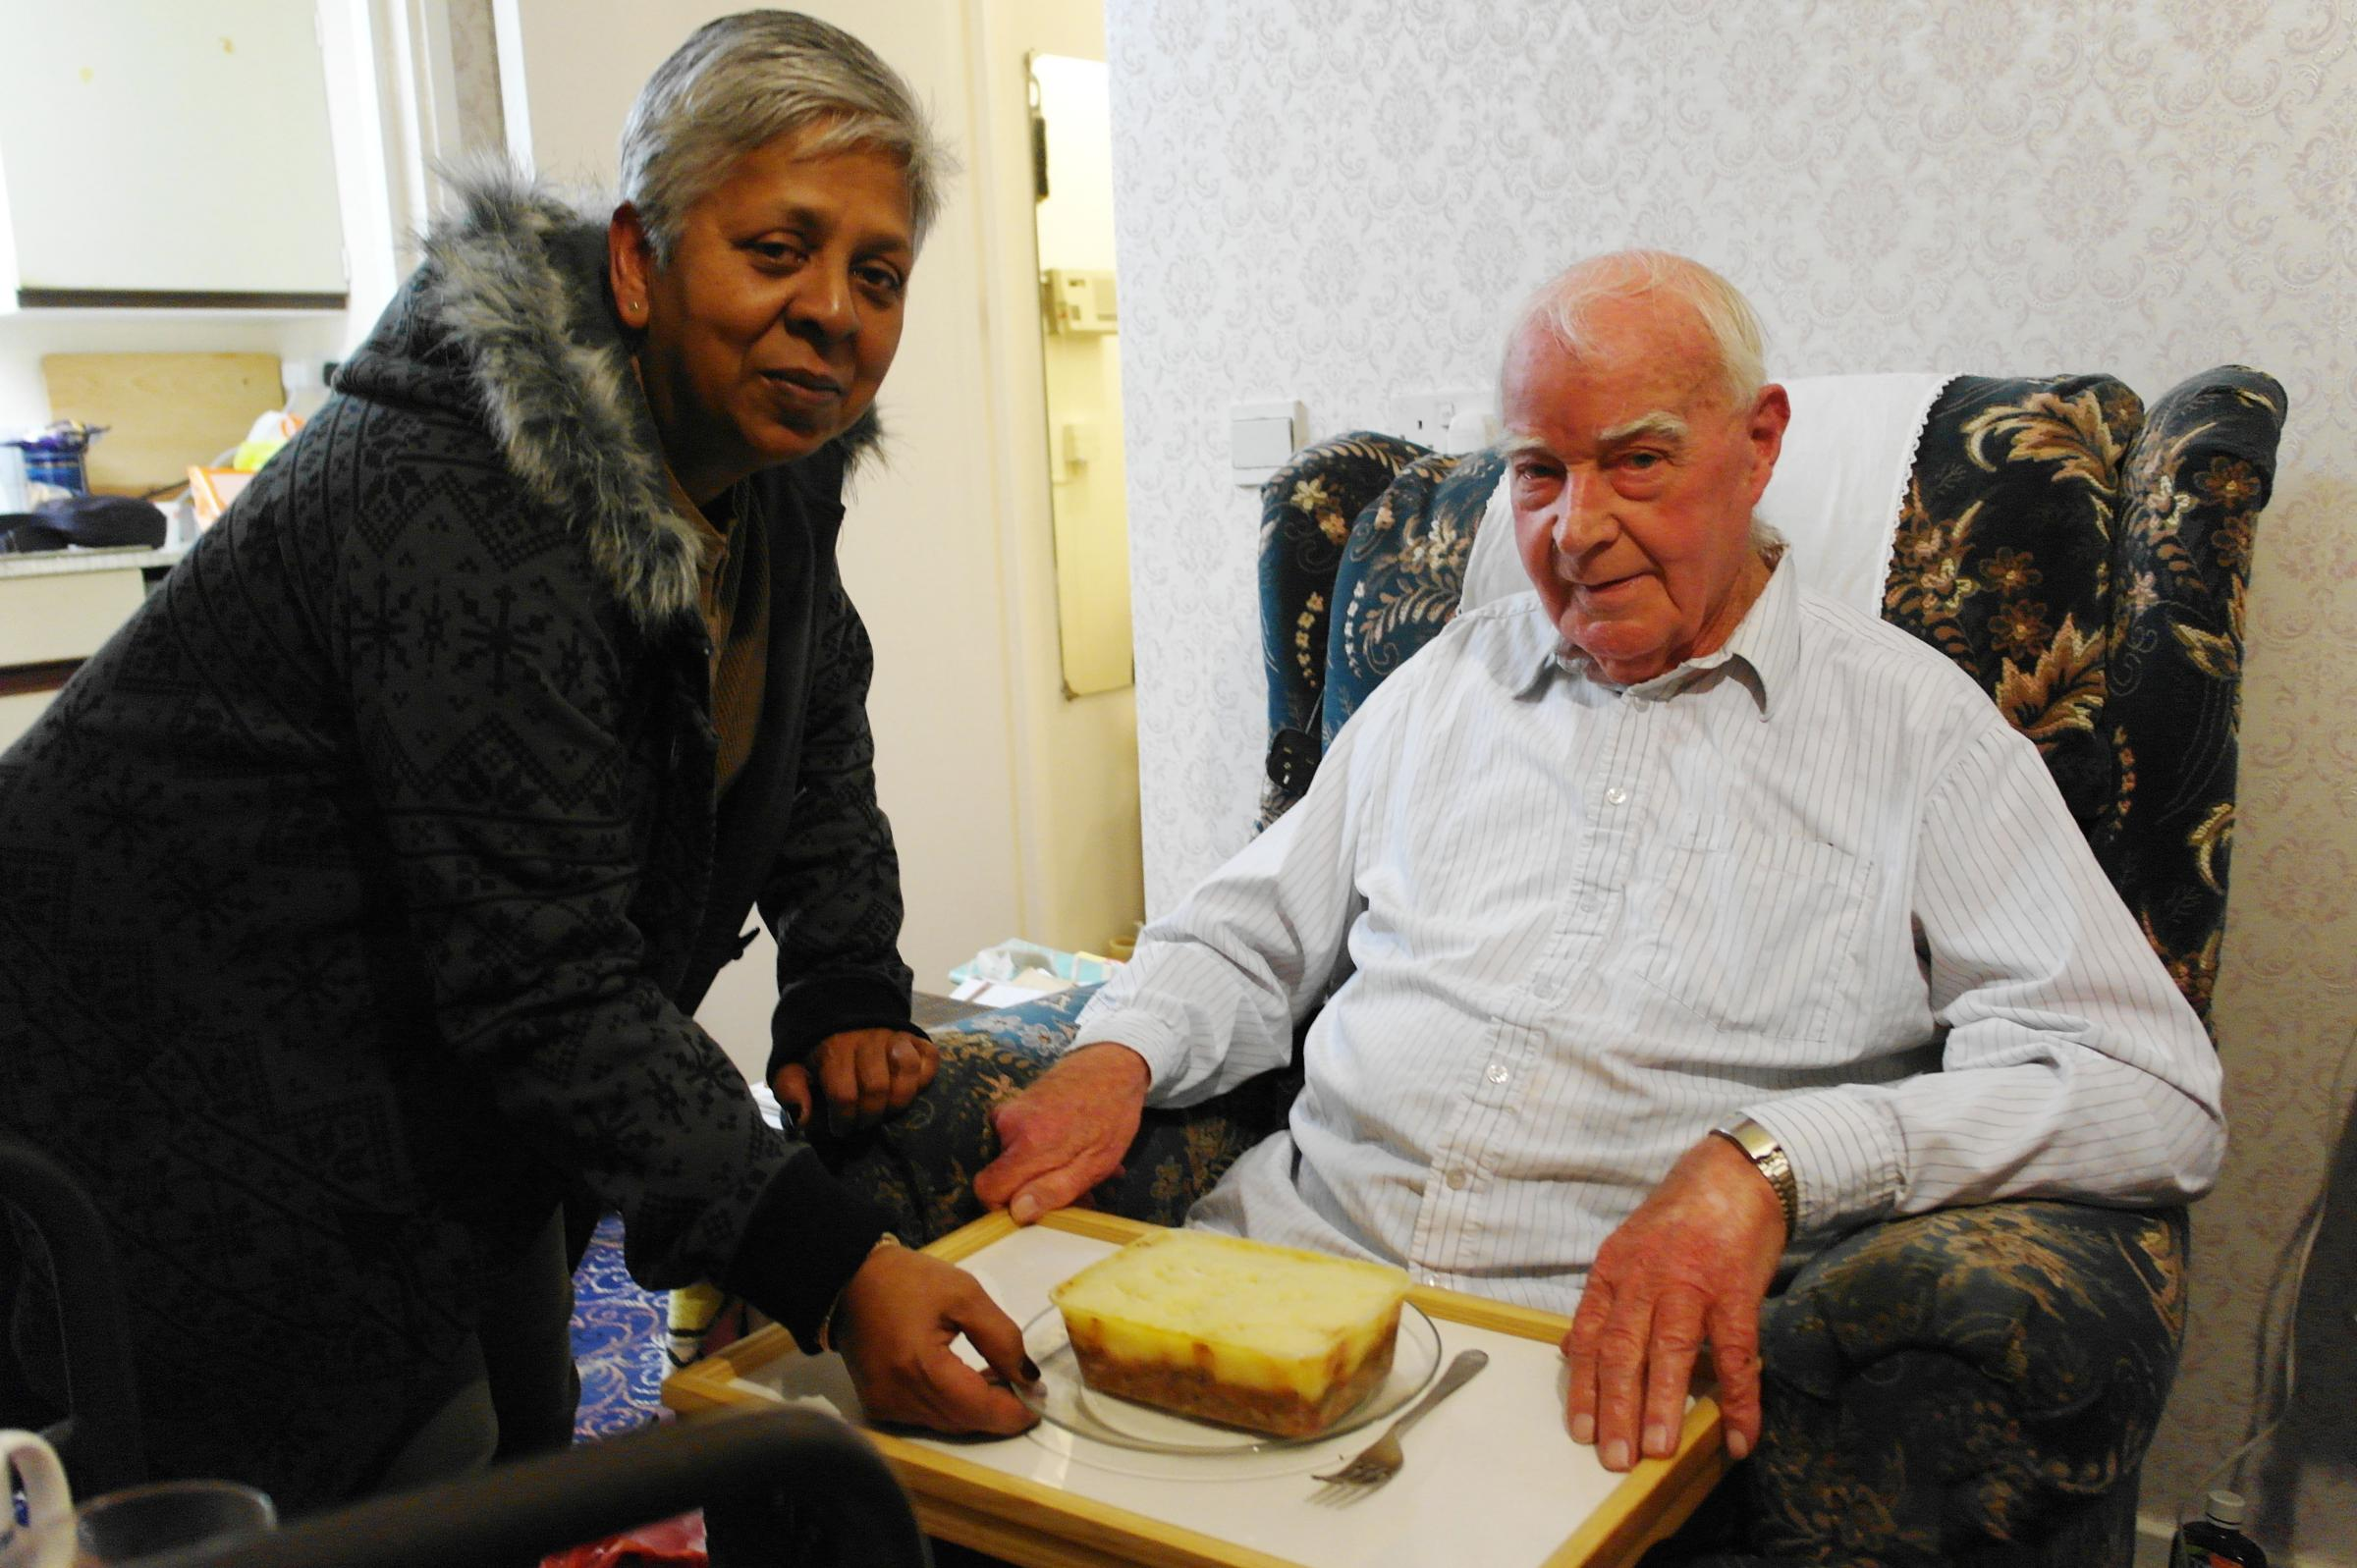 Share an extra portion of food with your elderly neighbour